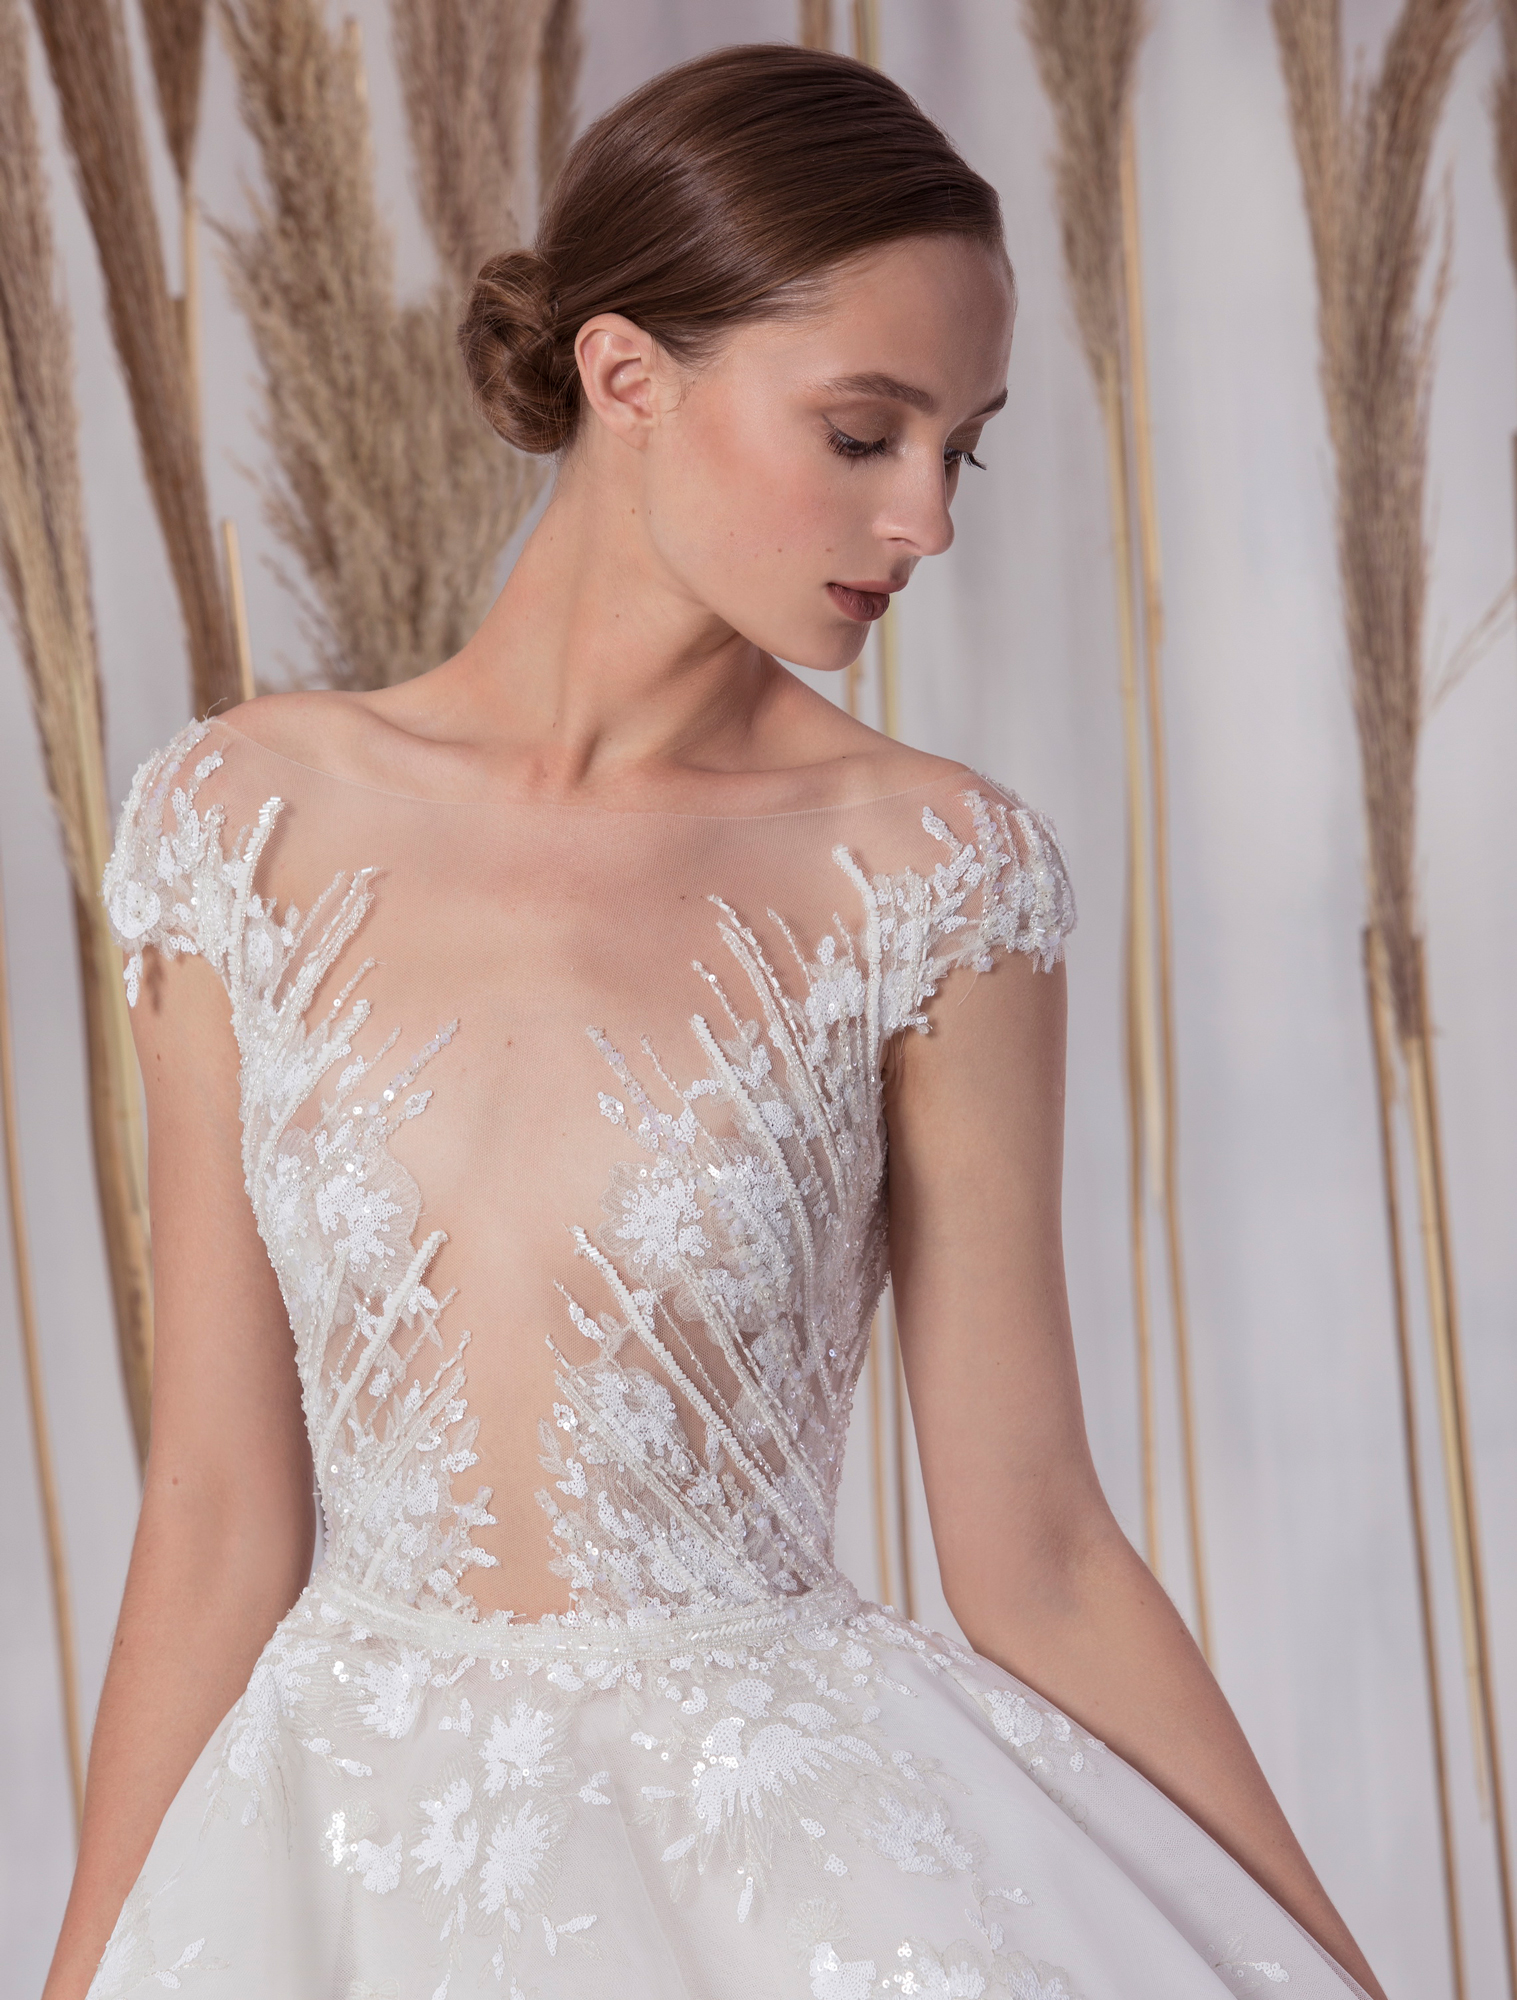 Trudy by Tony Ward from the La Mariee Collection